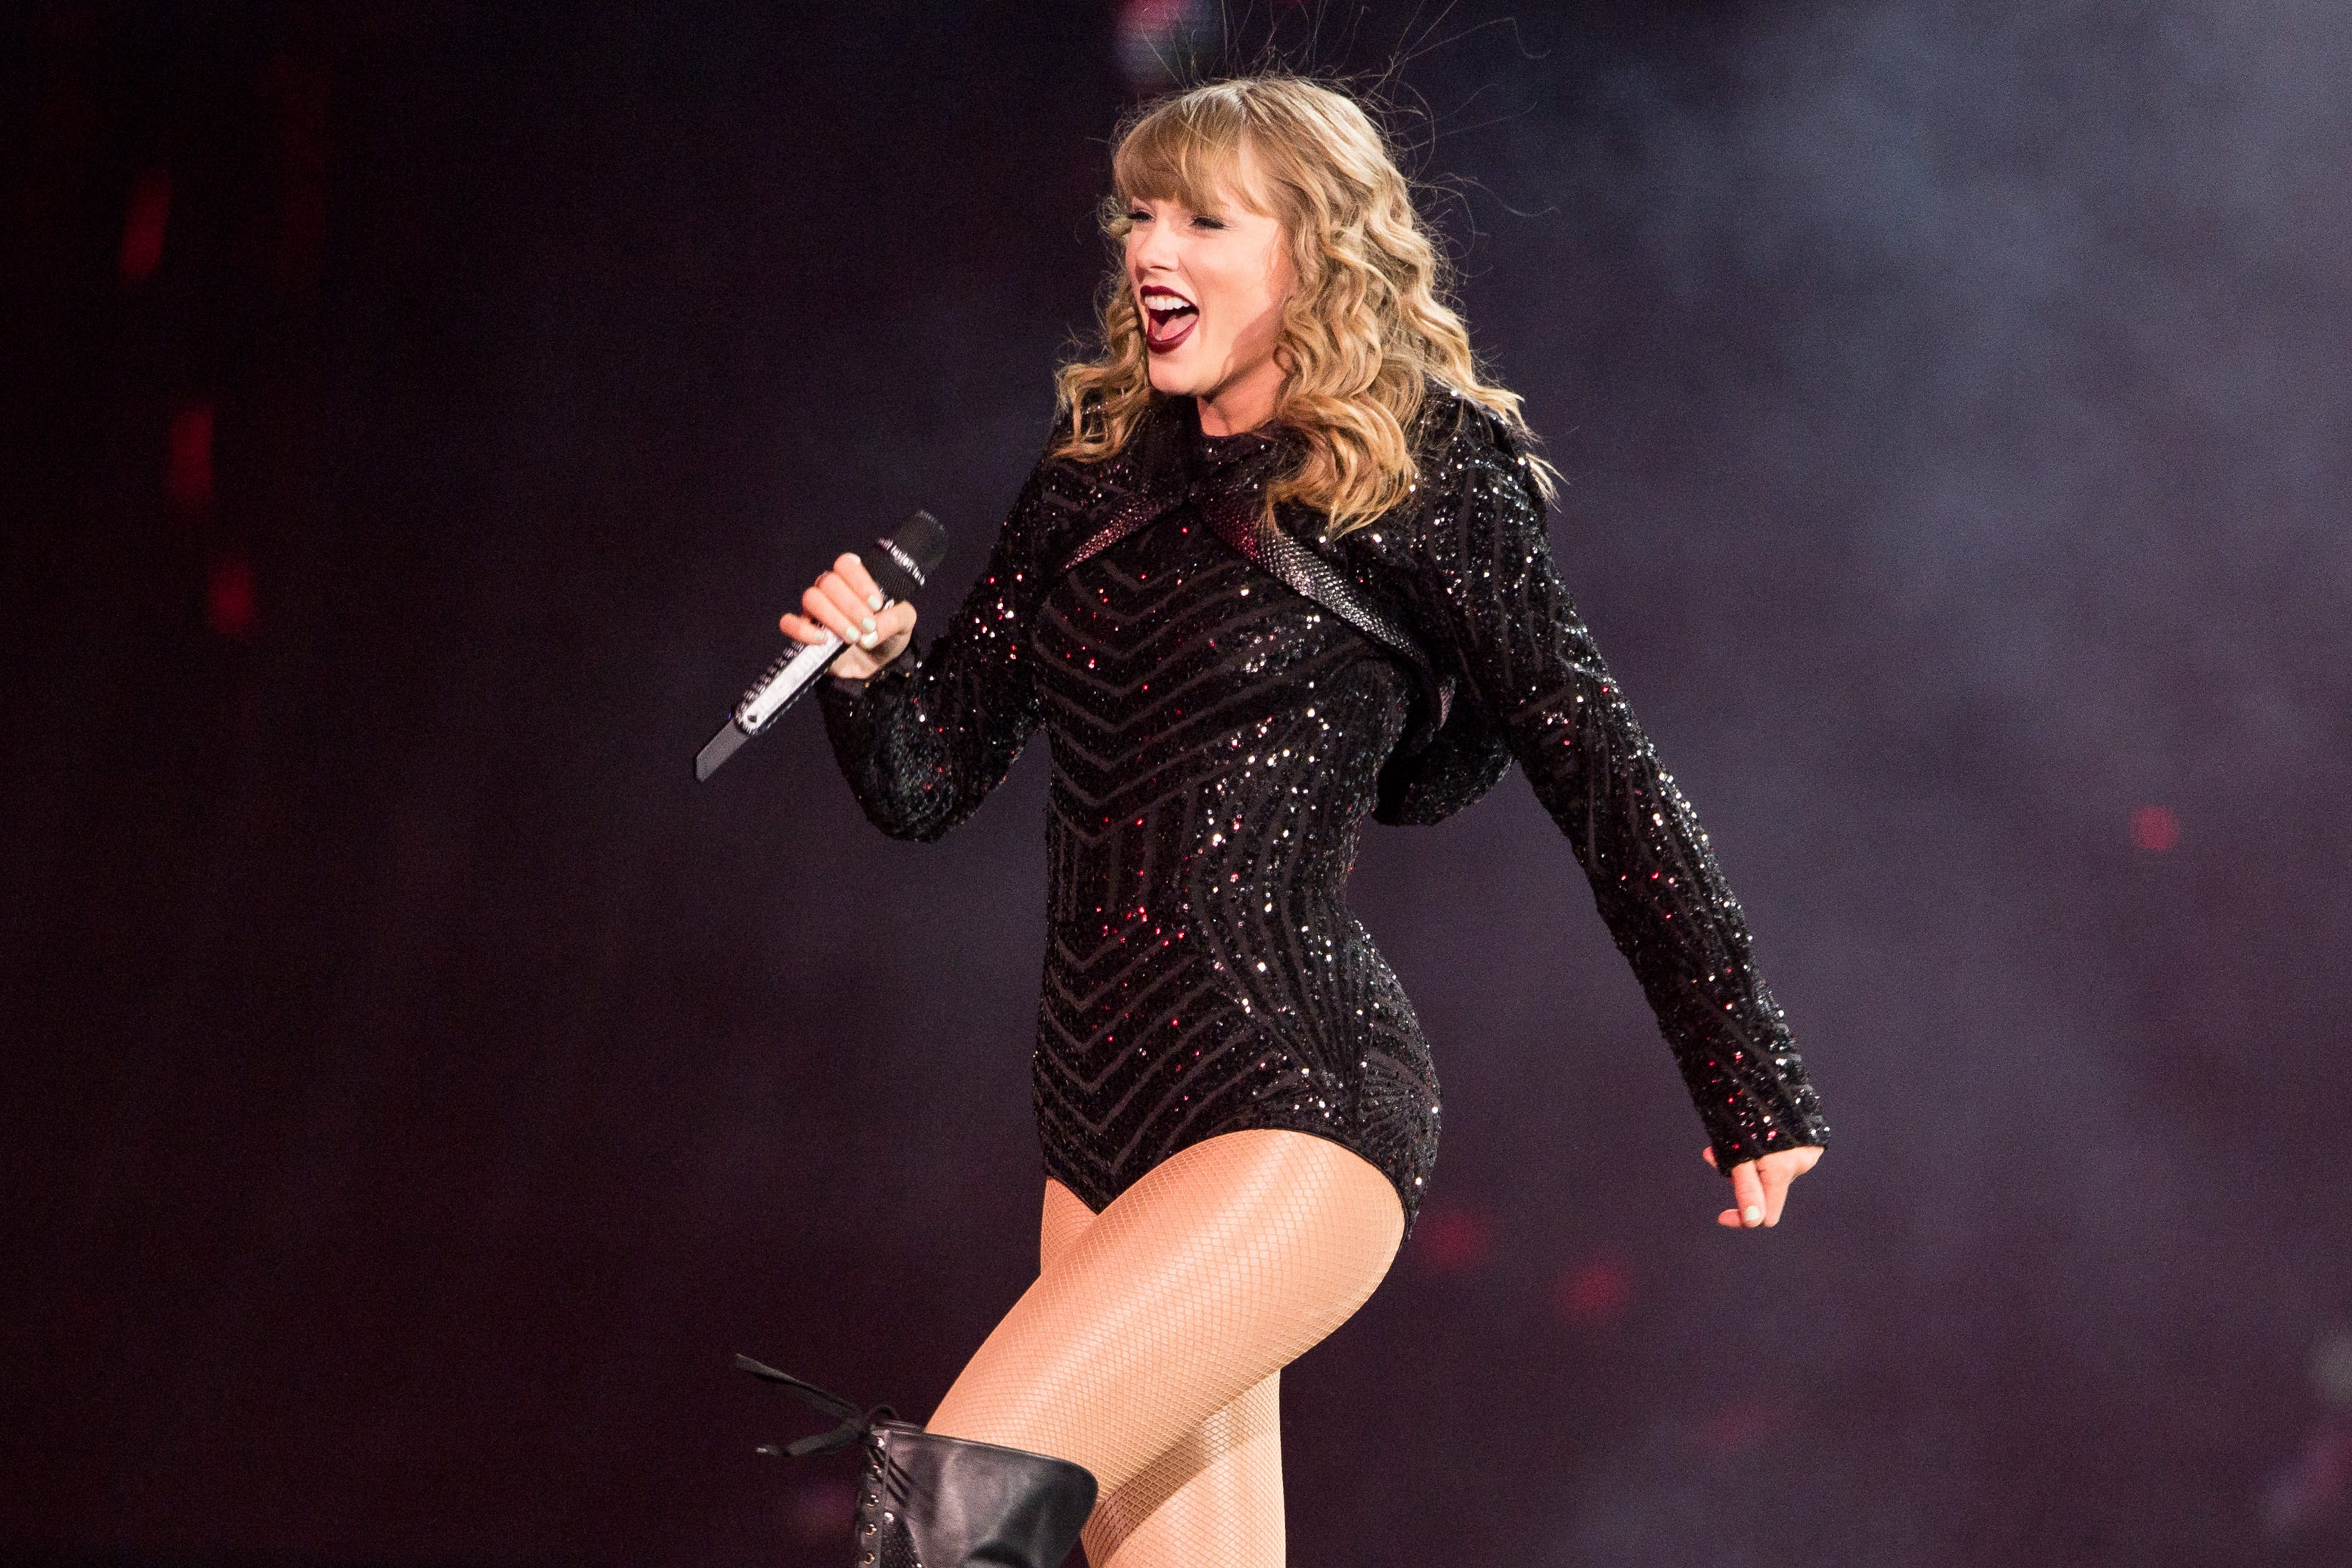 Taylor Swift donates $1 million to Tennessee tornado relief; Sheryl Crow holds clothing drive